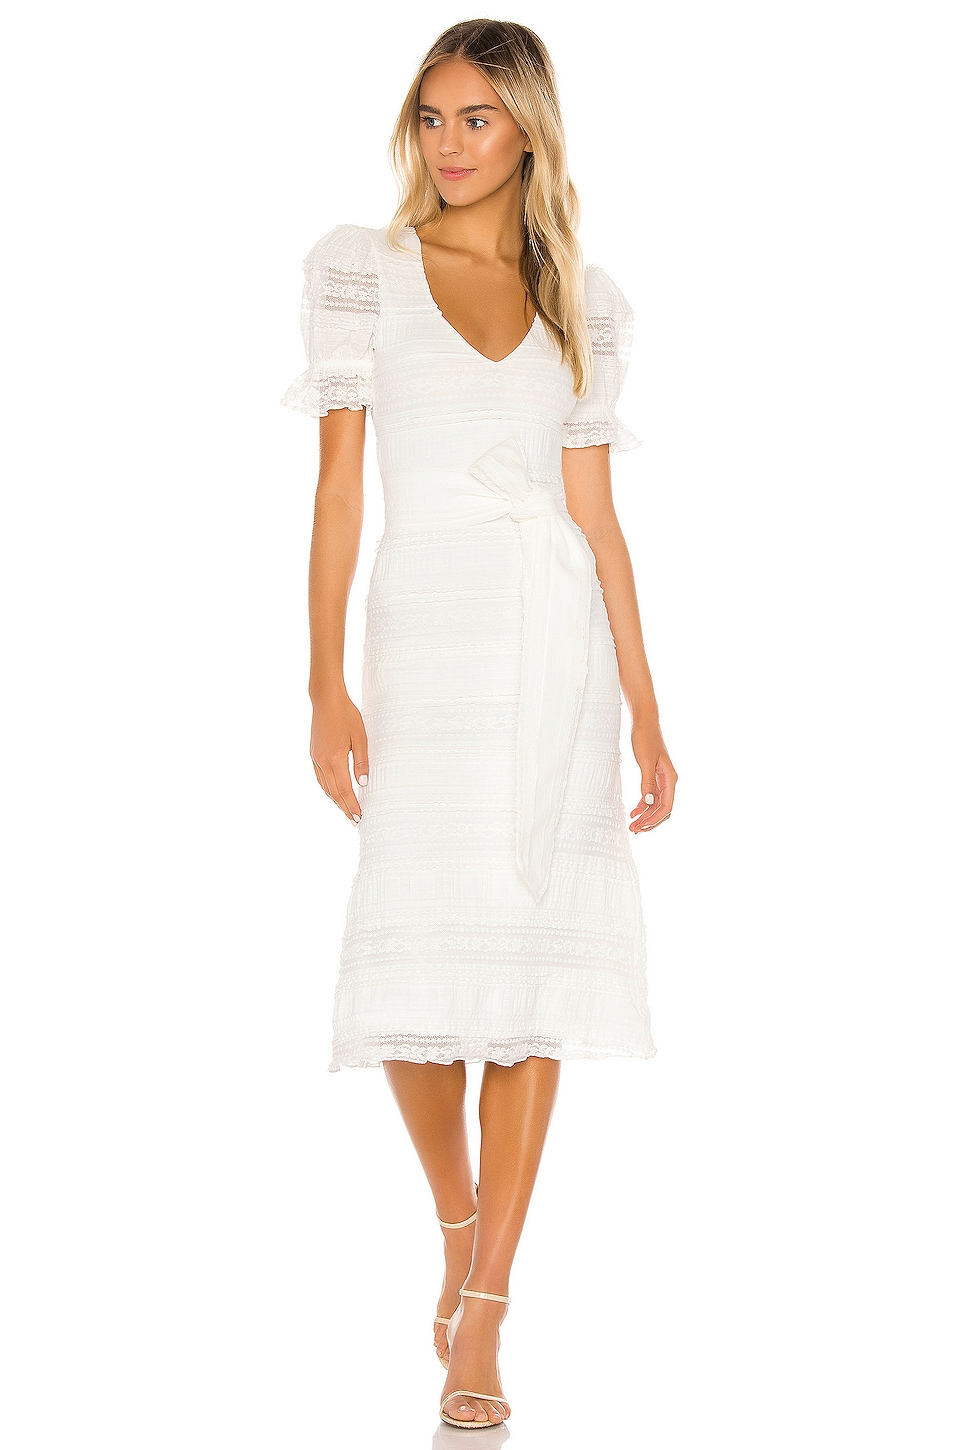 Quinn Midi Dress             Tularosa                                                                                                       CA$ 231.57 10